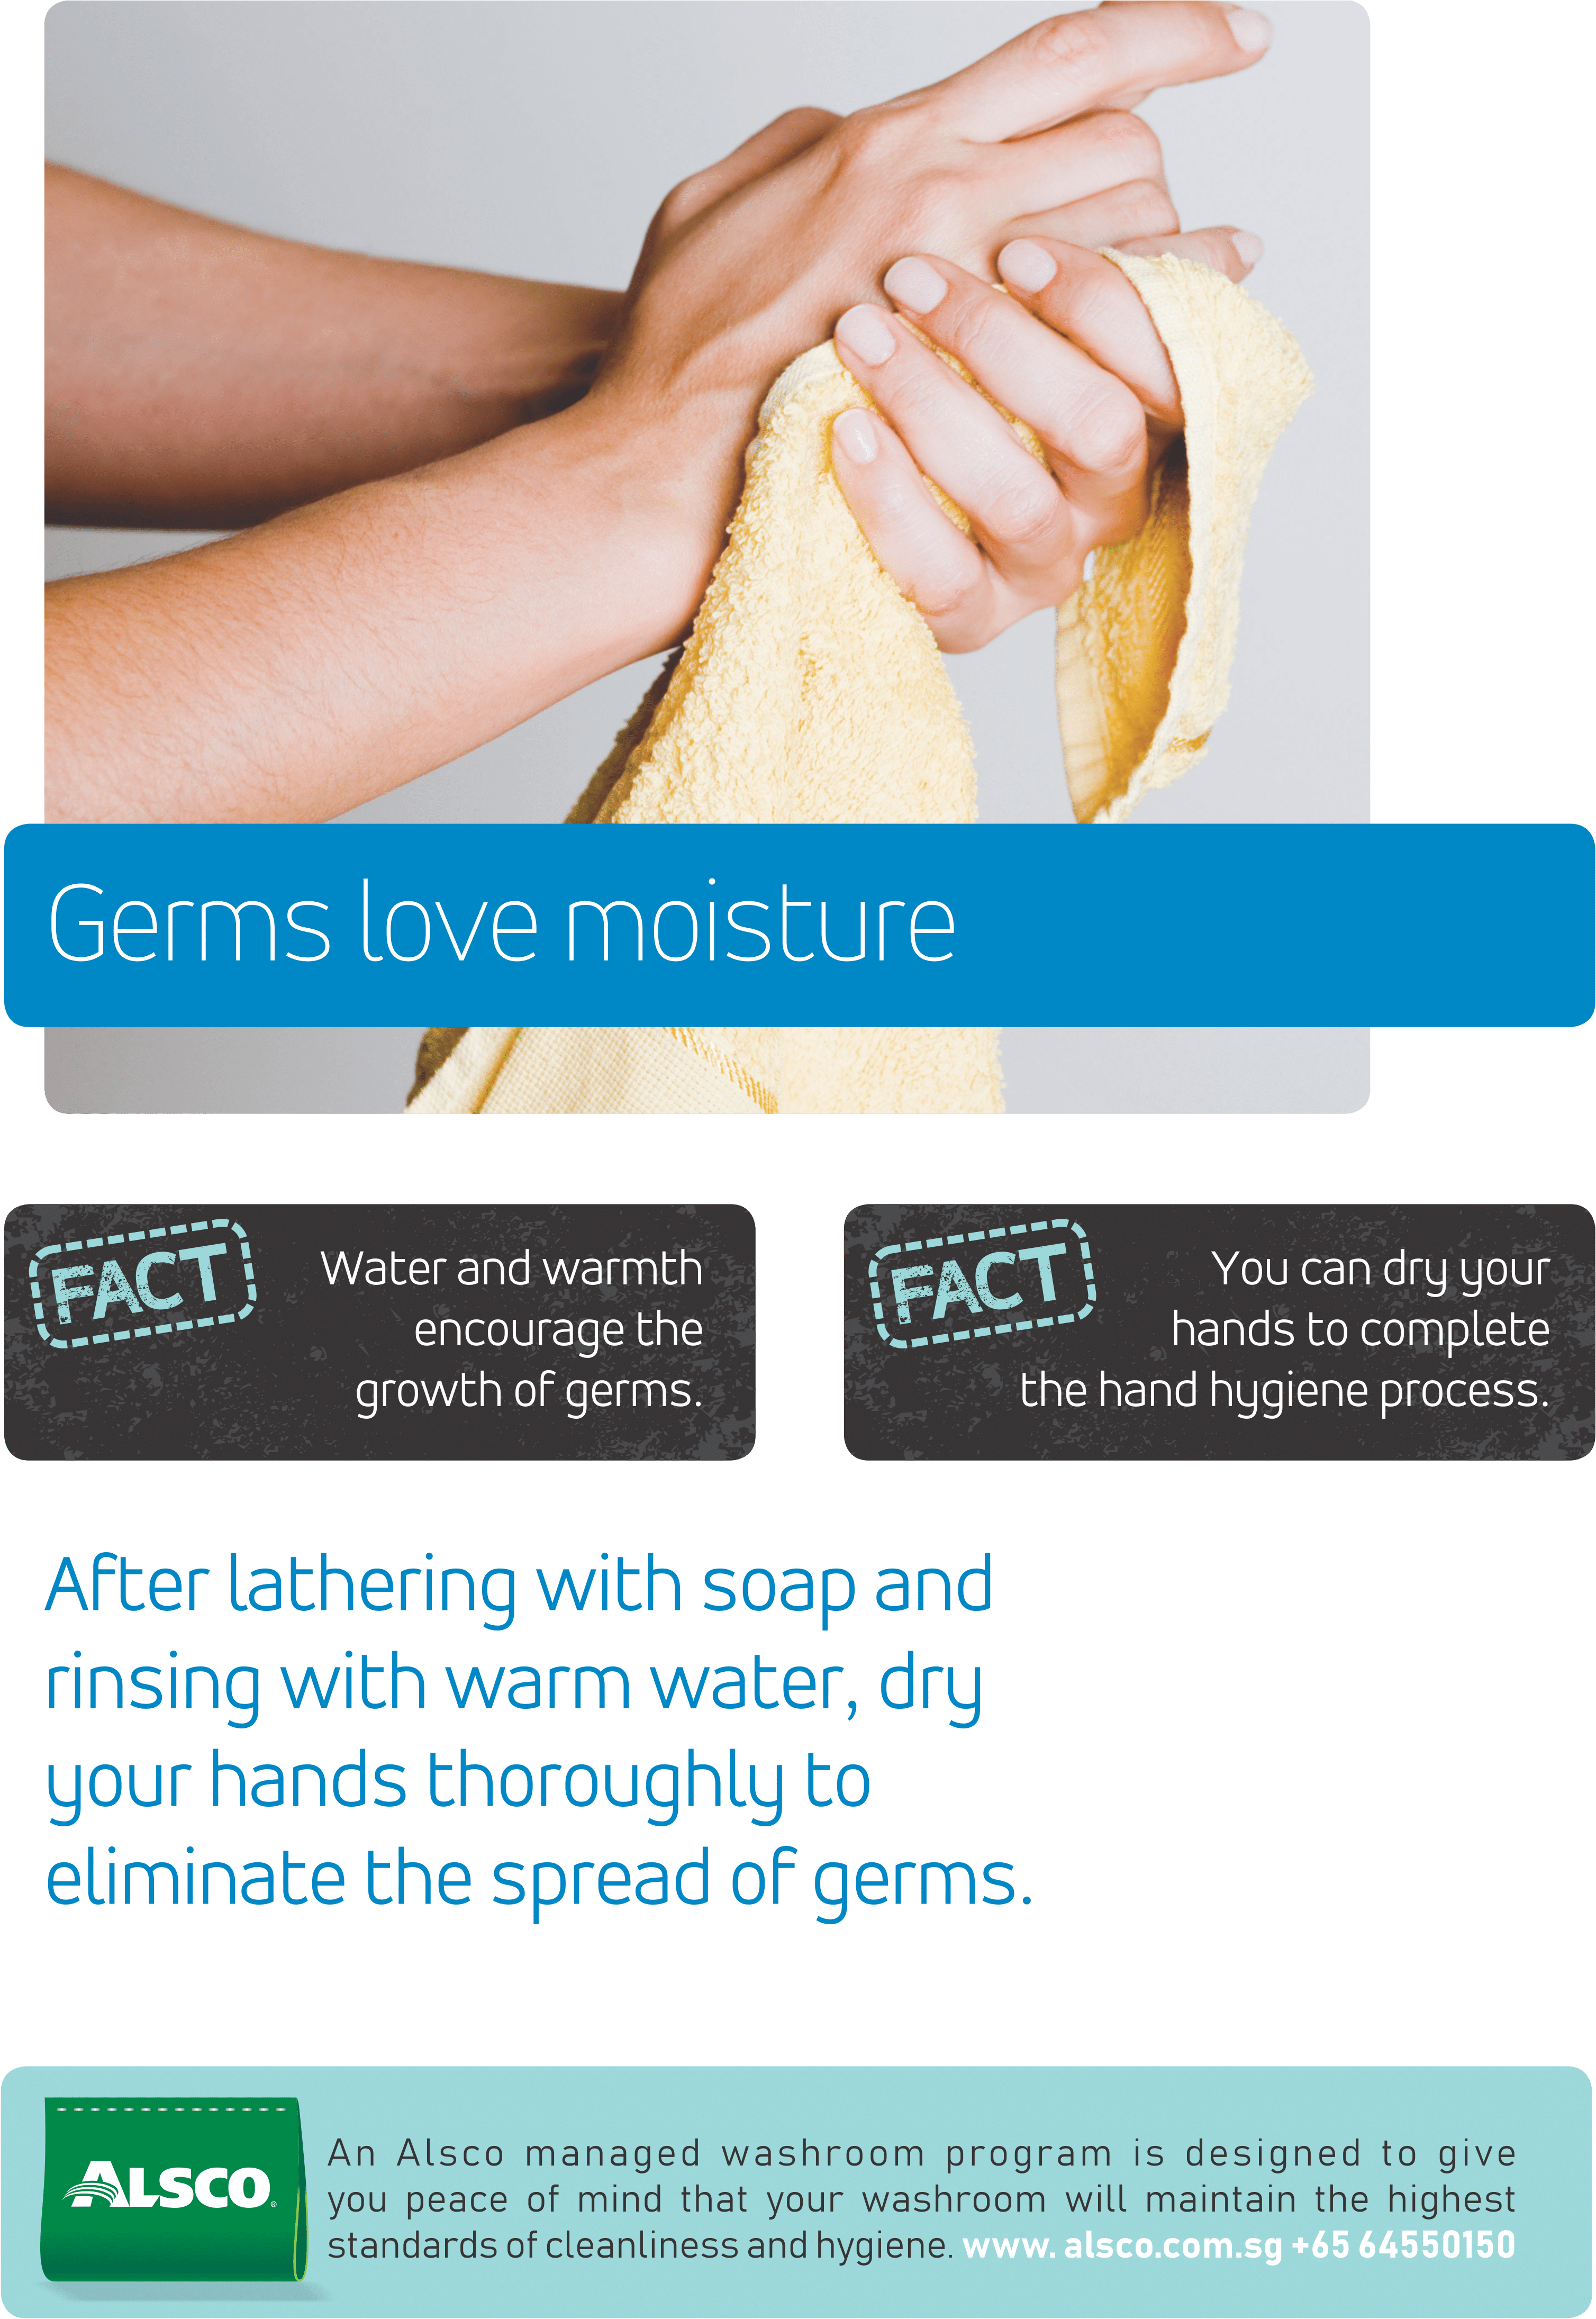 Download Alsco Hygiene Poster With A Woman Wiping Her Hands Png Image With No Background Pngkey Com Hand showing one fingers png clipart image. pngkey